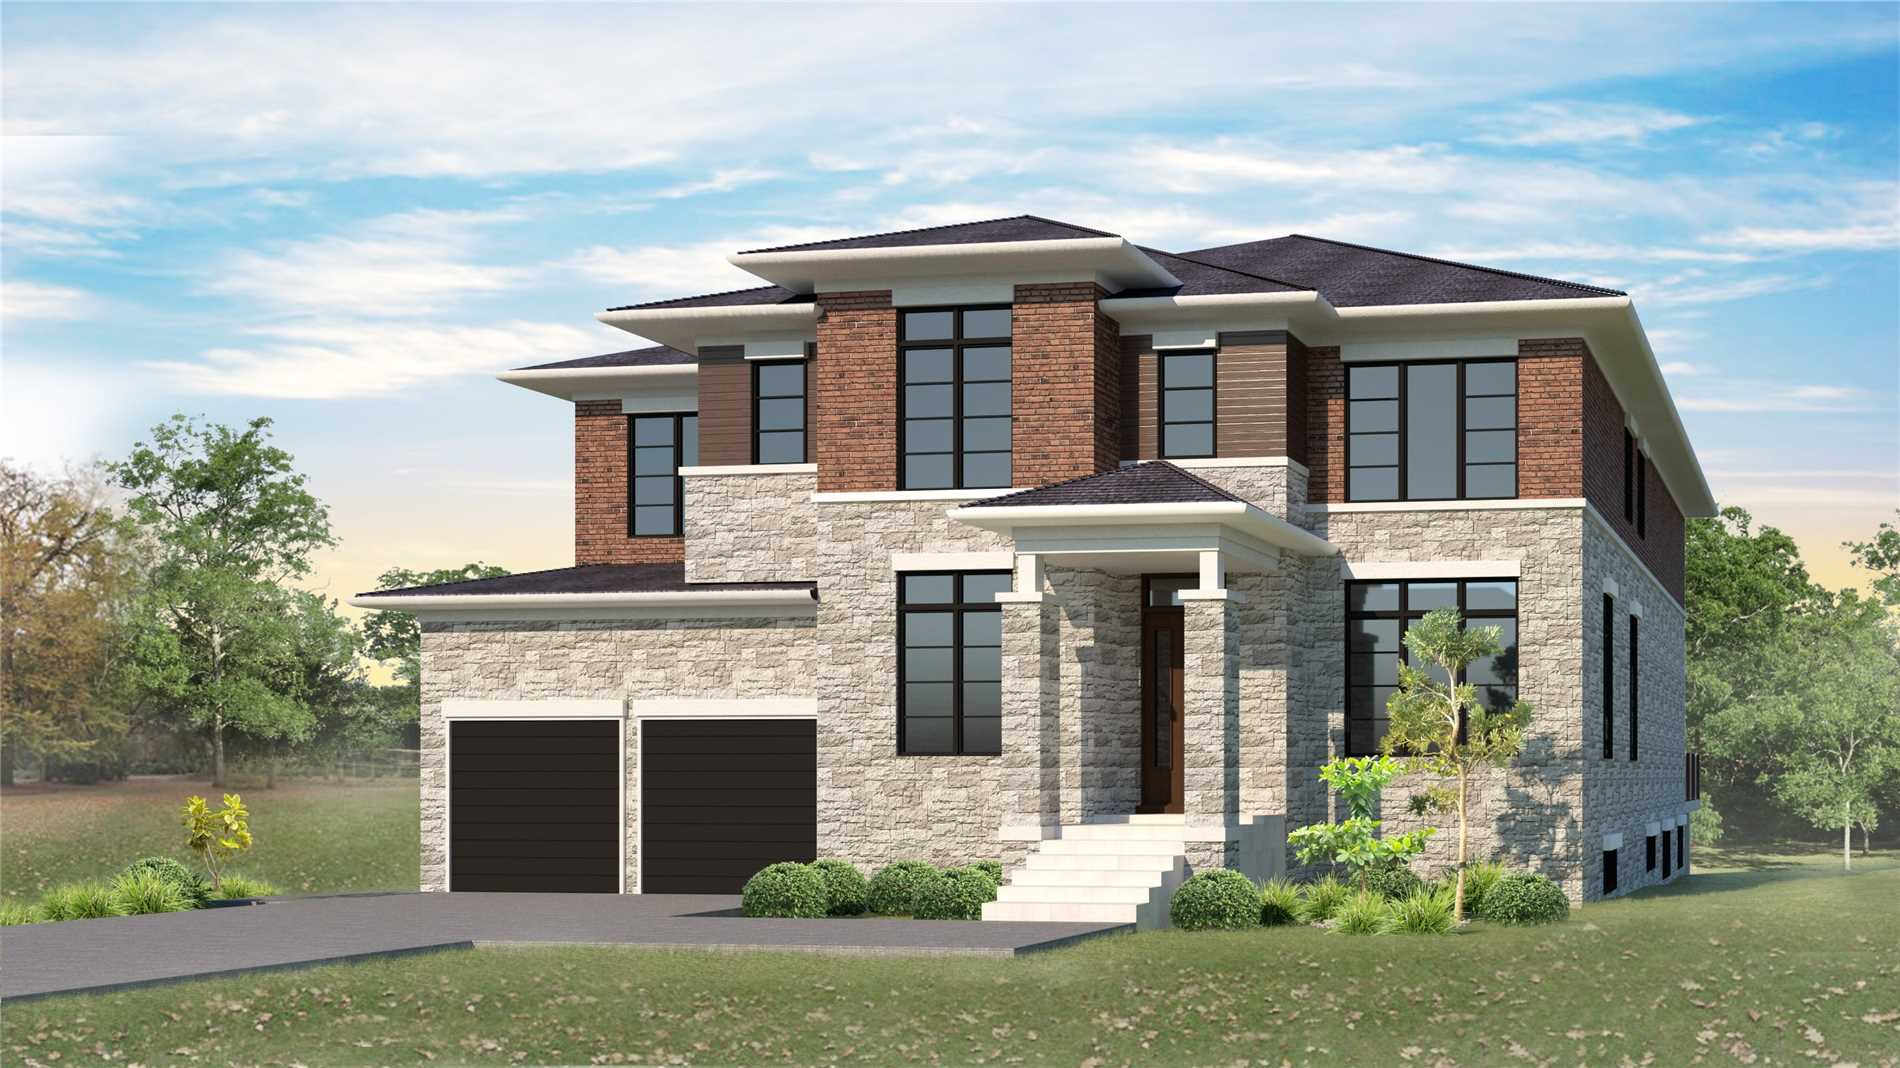 Opportunity Of A Lifetime! Two Custom Homes Side-By-Side On Pickering's Most Exclusive Street. Backing Onto Ravine And Rouge River, Over 6000 Sq.Ft. Of Finished Luxury From Reputable Builder With 30-Years Experience,Model Home Available To See. Builder Can Customize Home To Meet Specific Needs. Live Near The Lake And Canada's Largest Urban Park. Just 35Mins To Downtown And All The Amenities You Need.